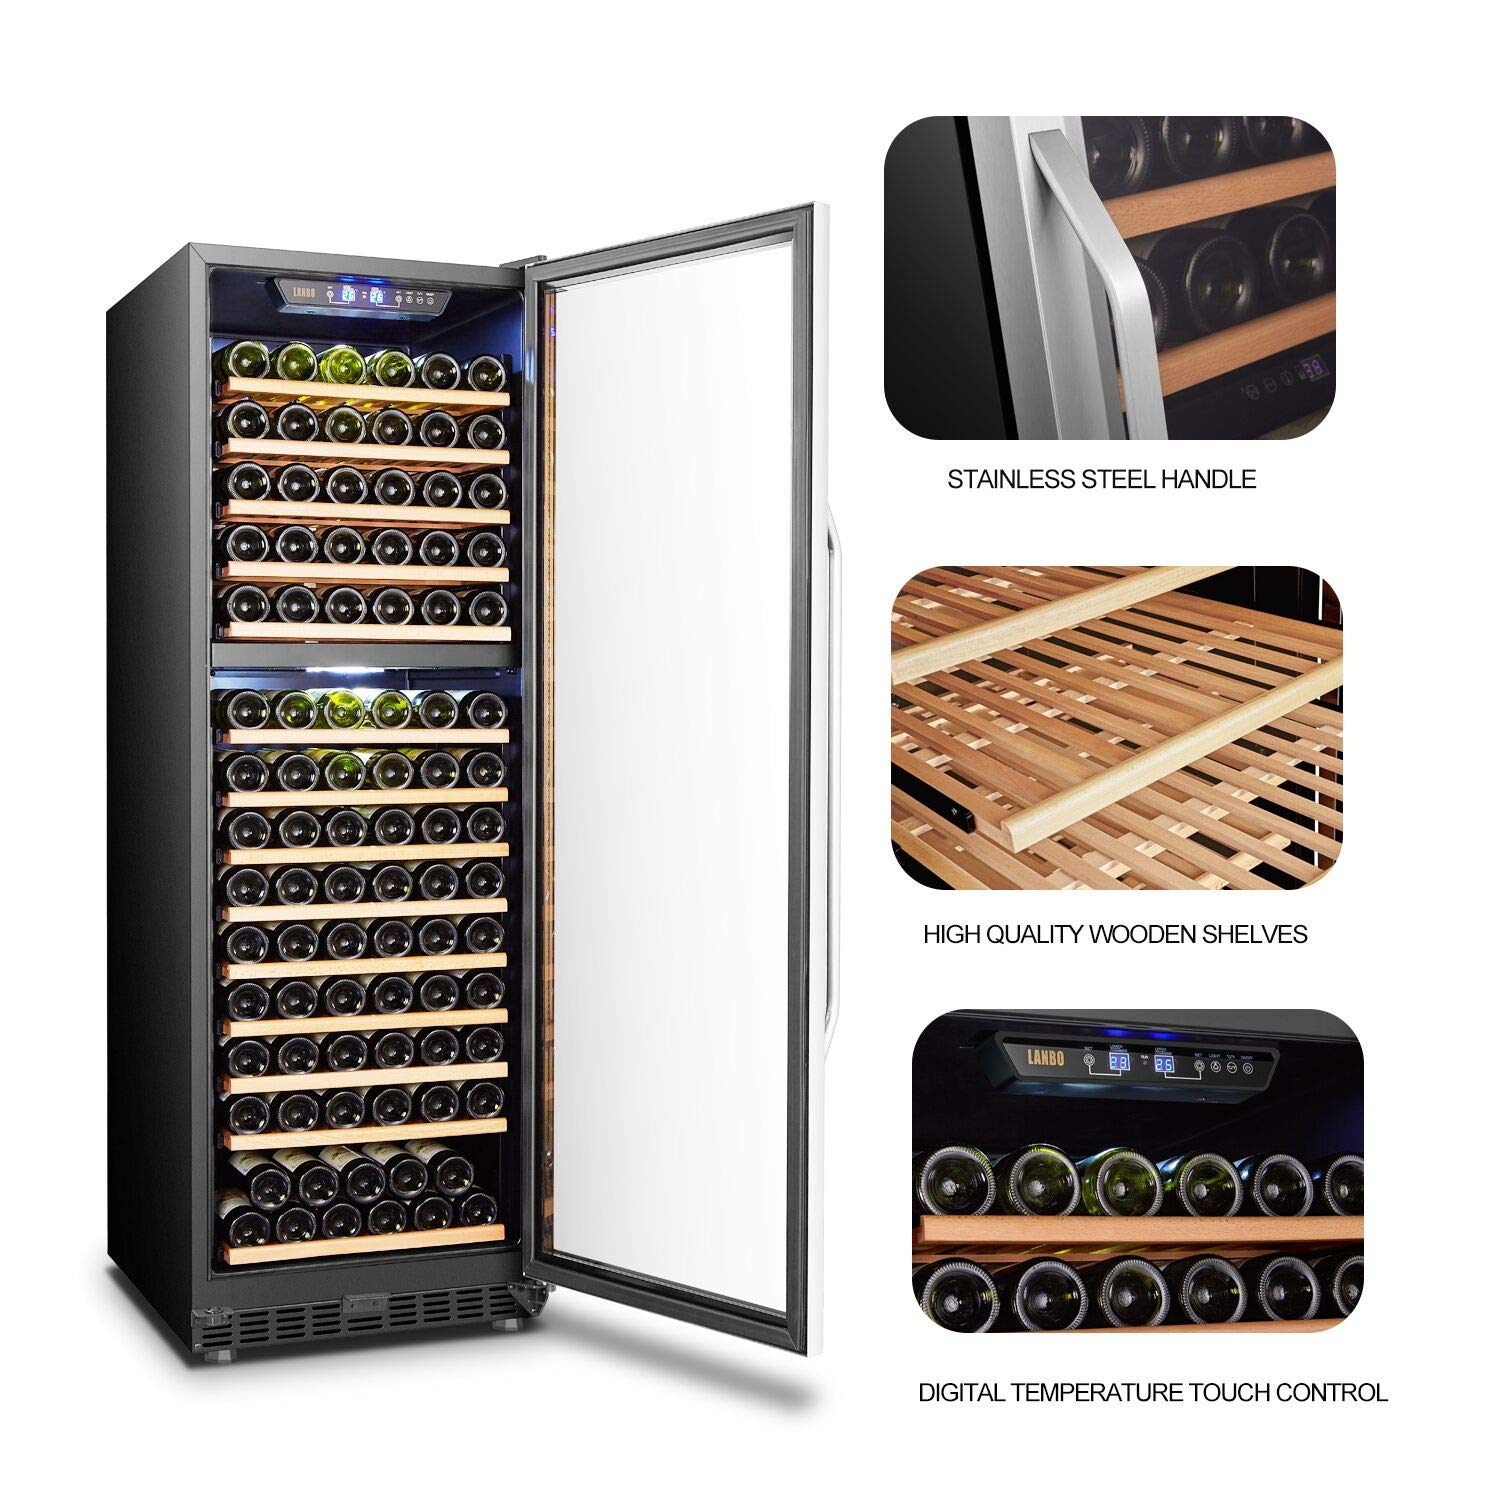 LANBO Wine Cellar Refrigerator, 160 Bottle Dual Zone Compressor